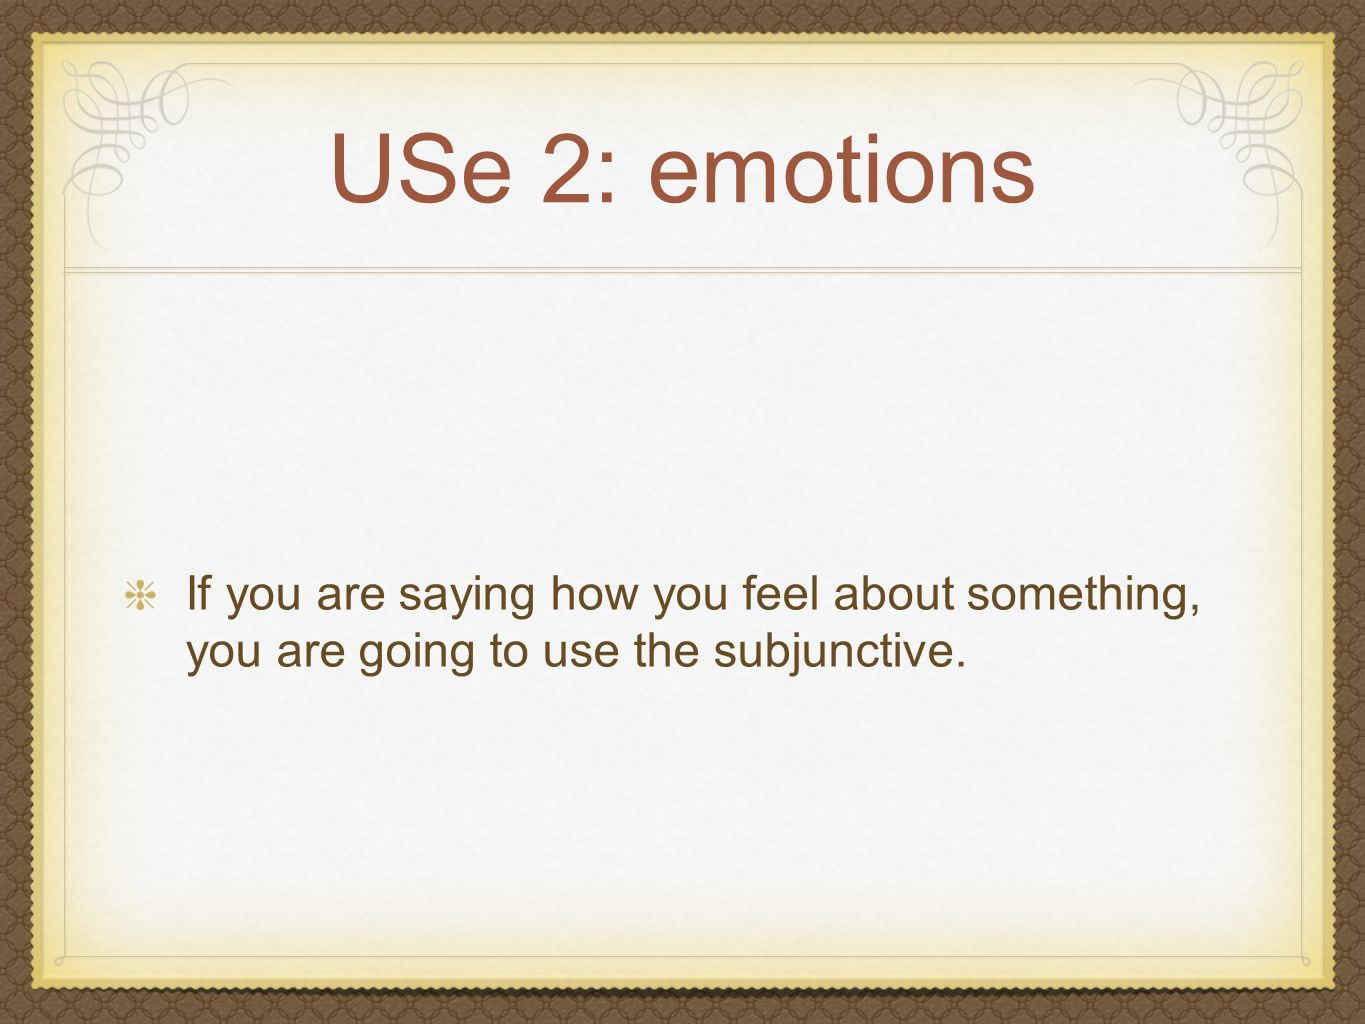 USe 2: emotions If you are saying how you feel about something, you are going to use the subjunctive.